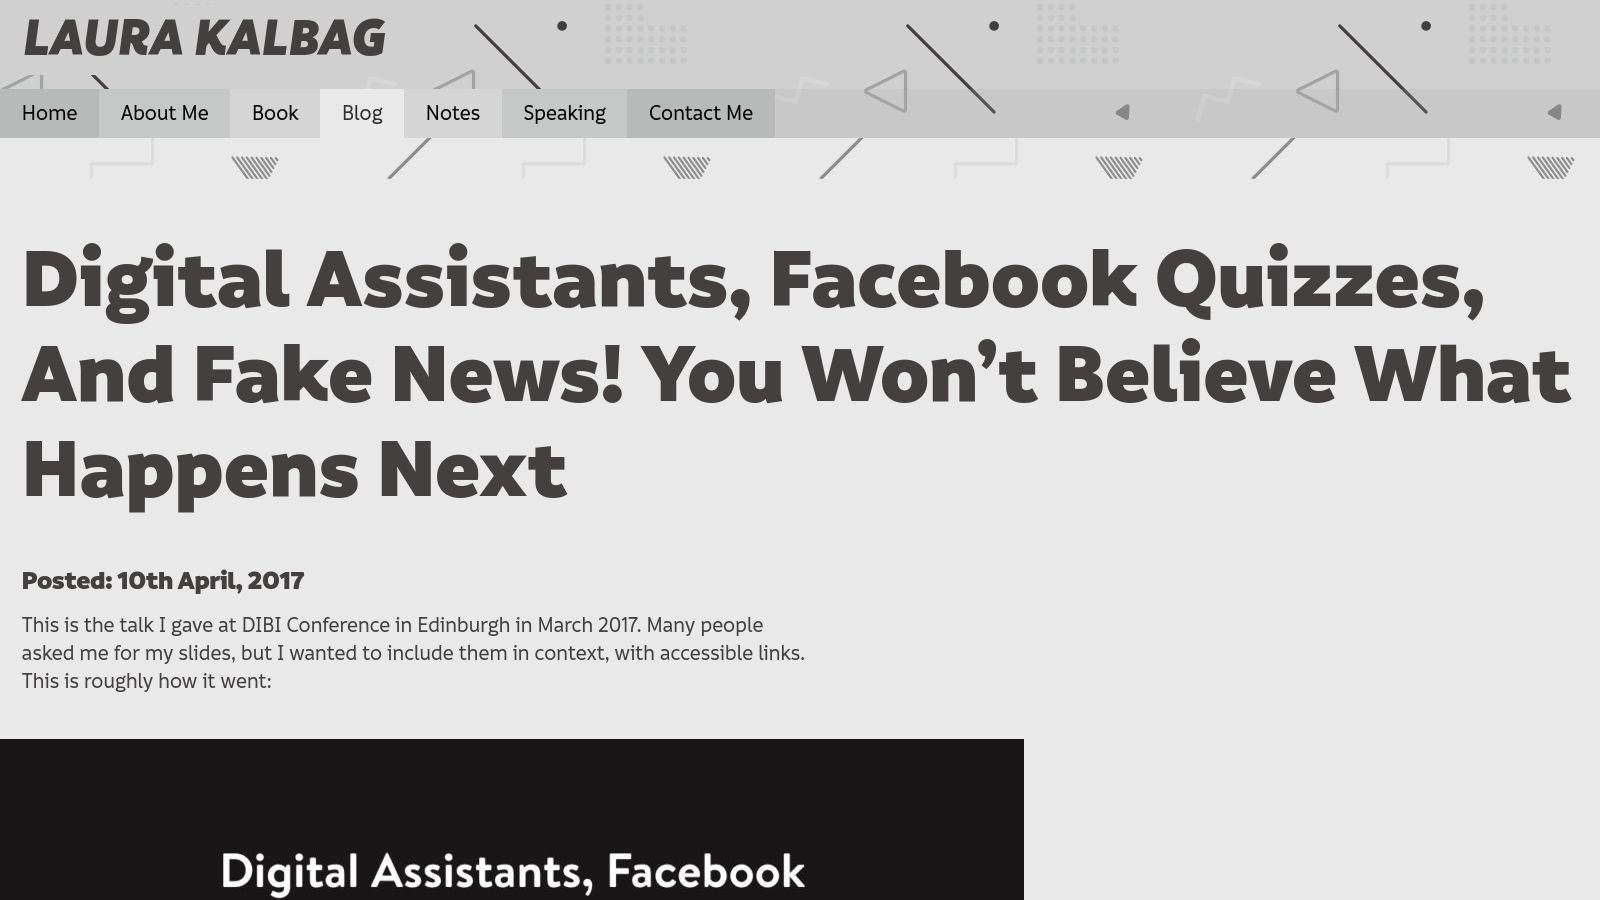 Digital Assistants, Facebook Quizzes, And Fake News! You Won't Believe What Happens Next